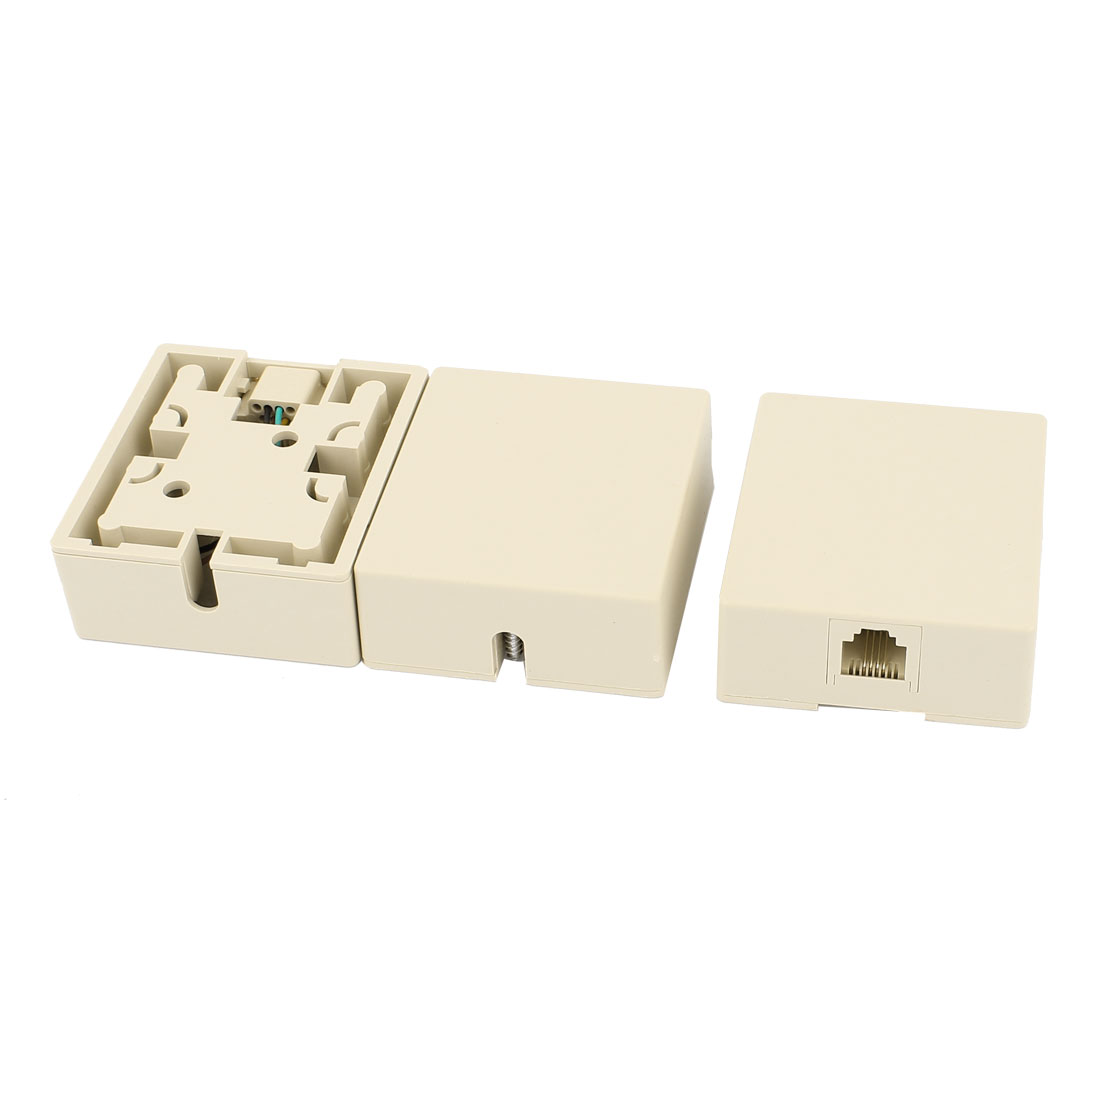 3Pcs Surface Mount RJ45 8P4C Female Phone Cable Extension Line Network Connector Adapter Jack